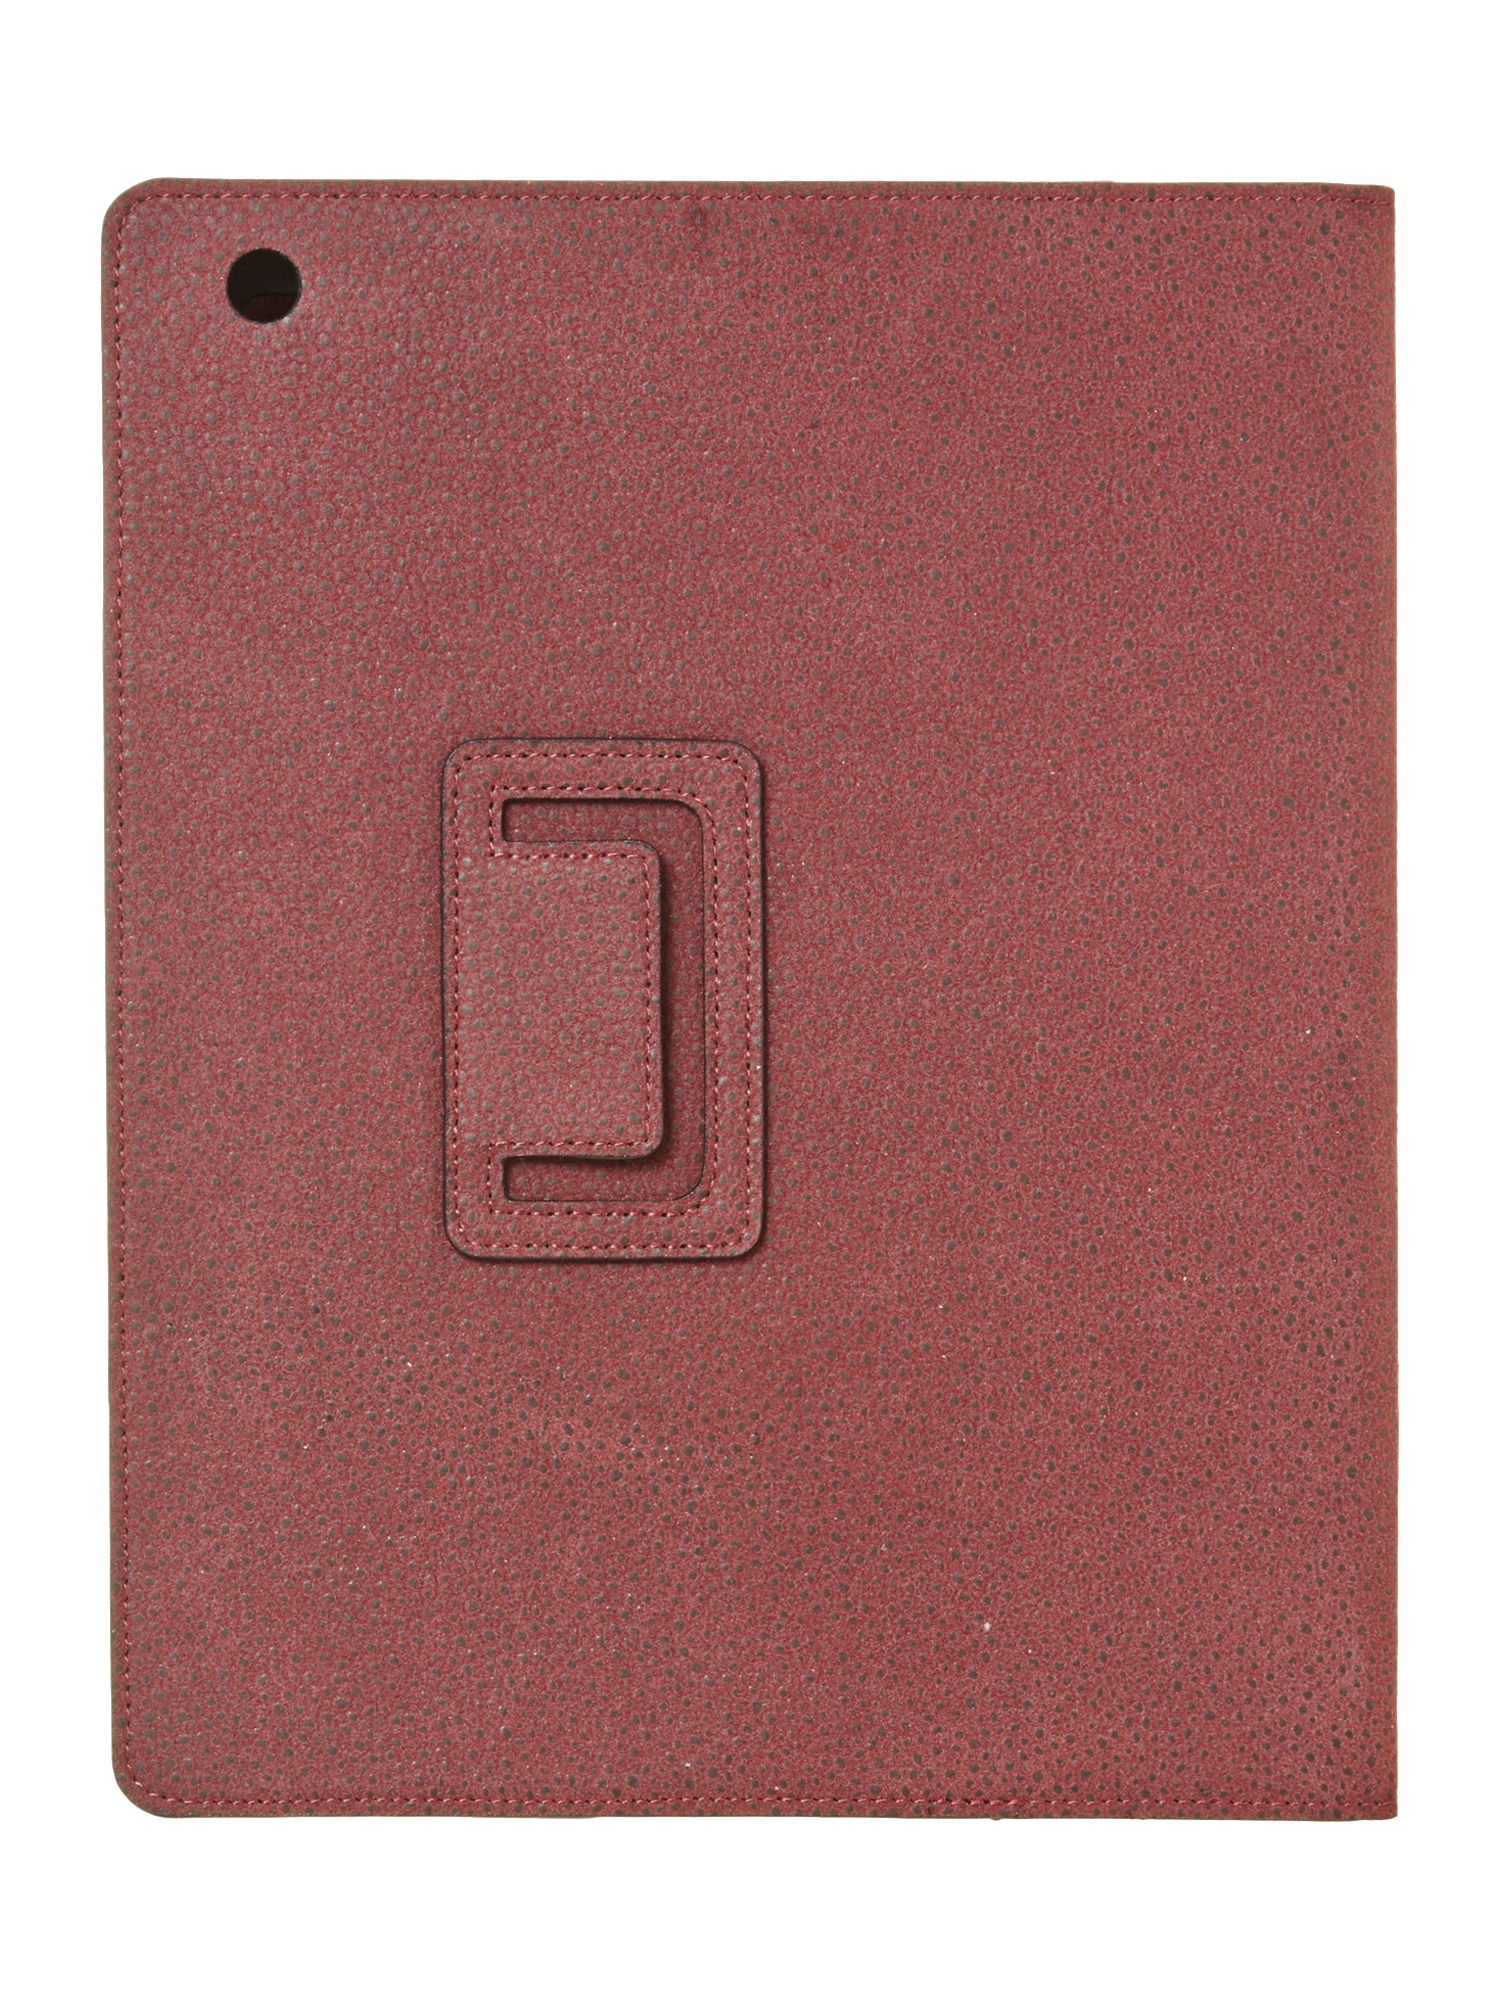 Scotch grain tablet case